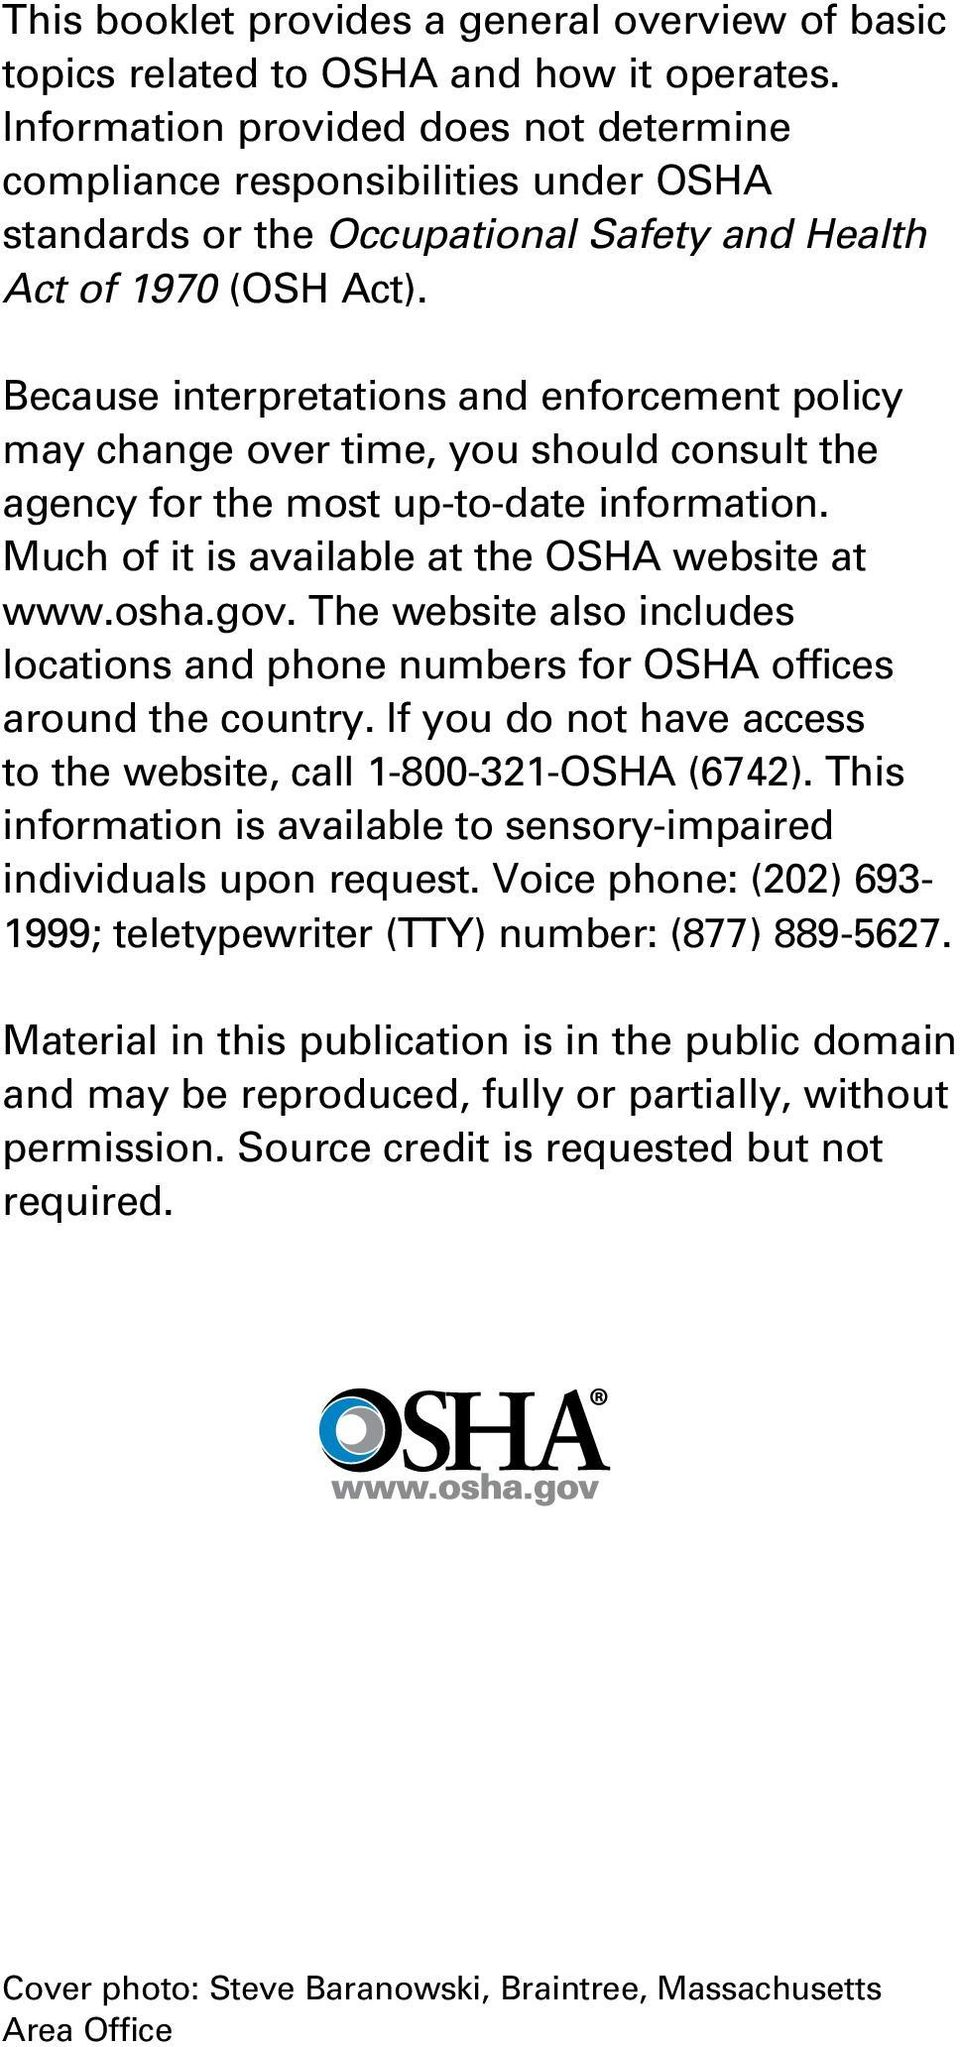 Because interpretations and enforcement policy may change over time, you should consult the agency for the most up-to-date information. Much of it is available at the OSHA website at www.osha.gov.